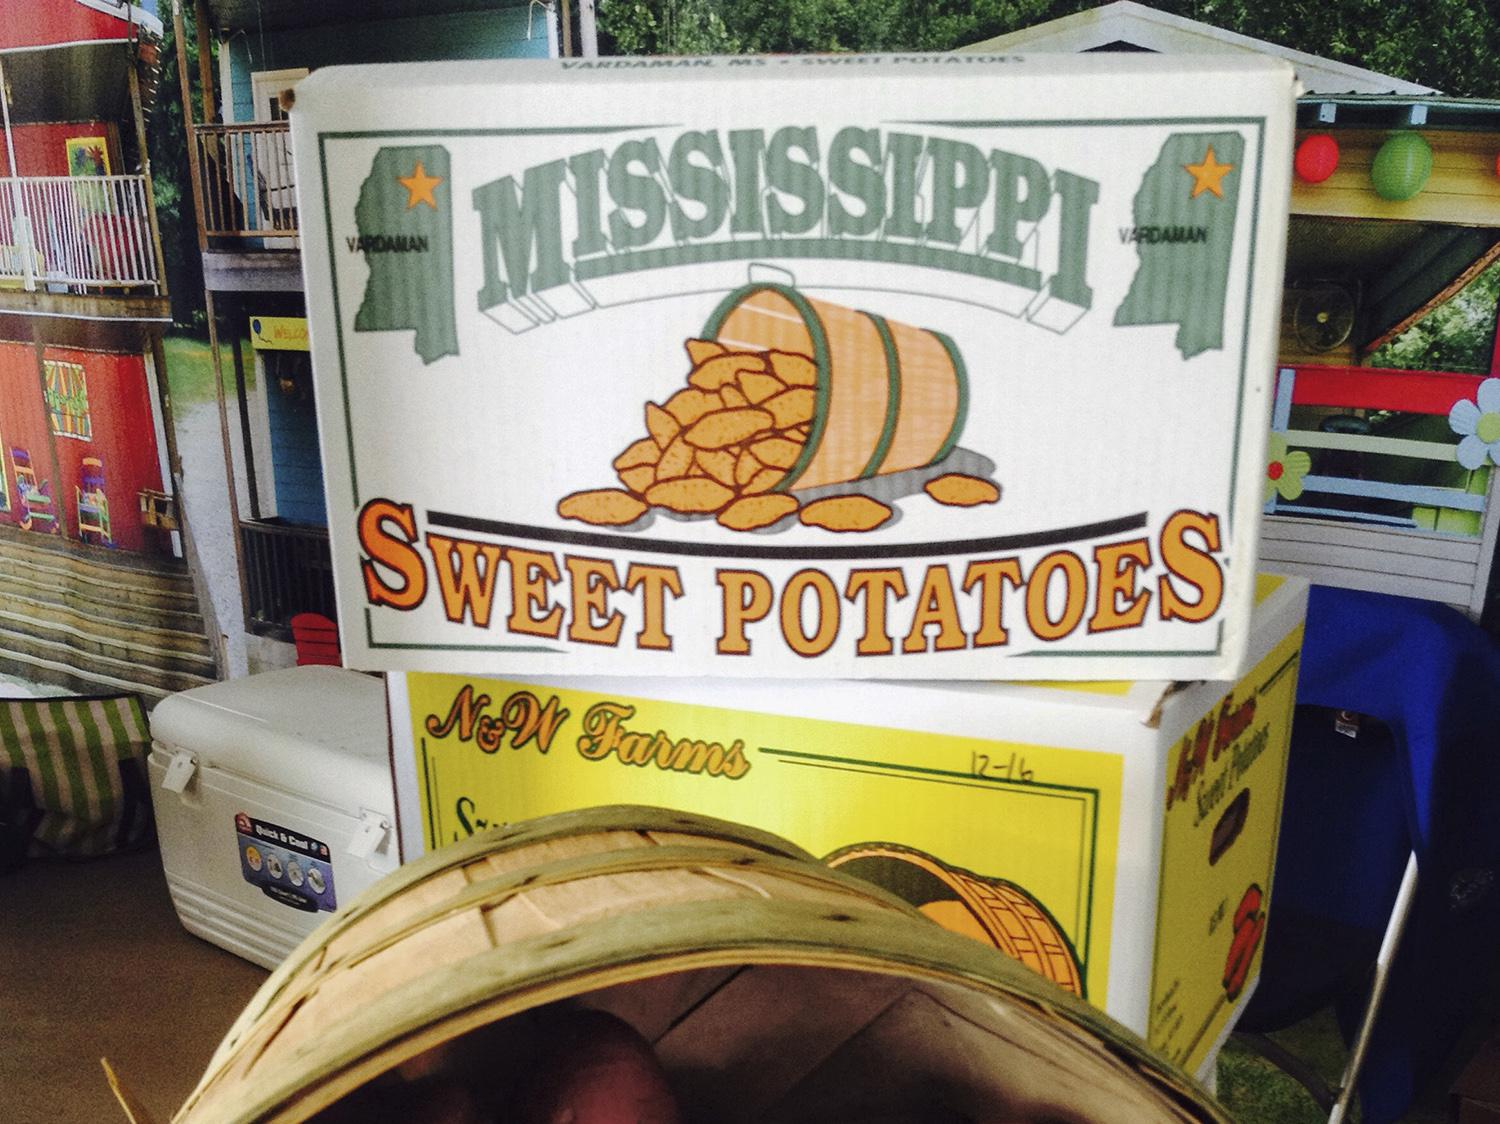 More than 100 sweet potato growers in Mississippi planted 23,200 acres of the crop this year. That is second only to North Carolina in the U.S. by acreage. (Photo by MSU Extension, Kevin Hudson)